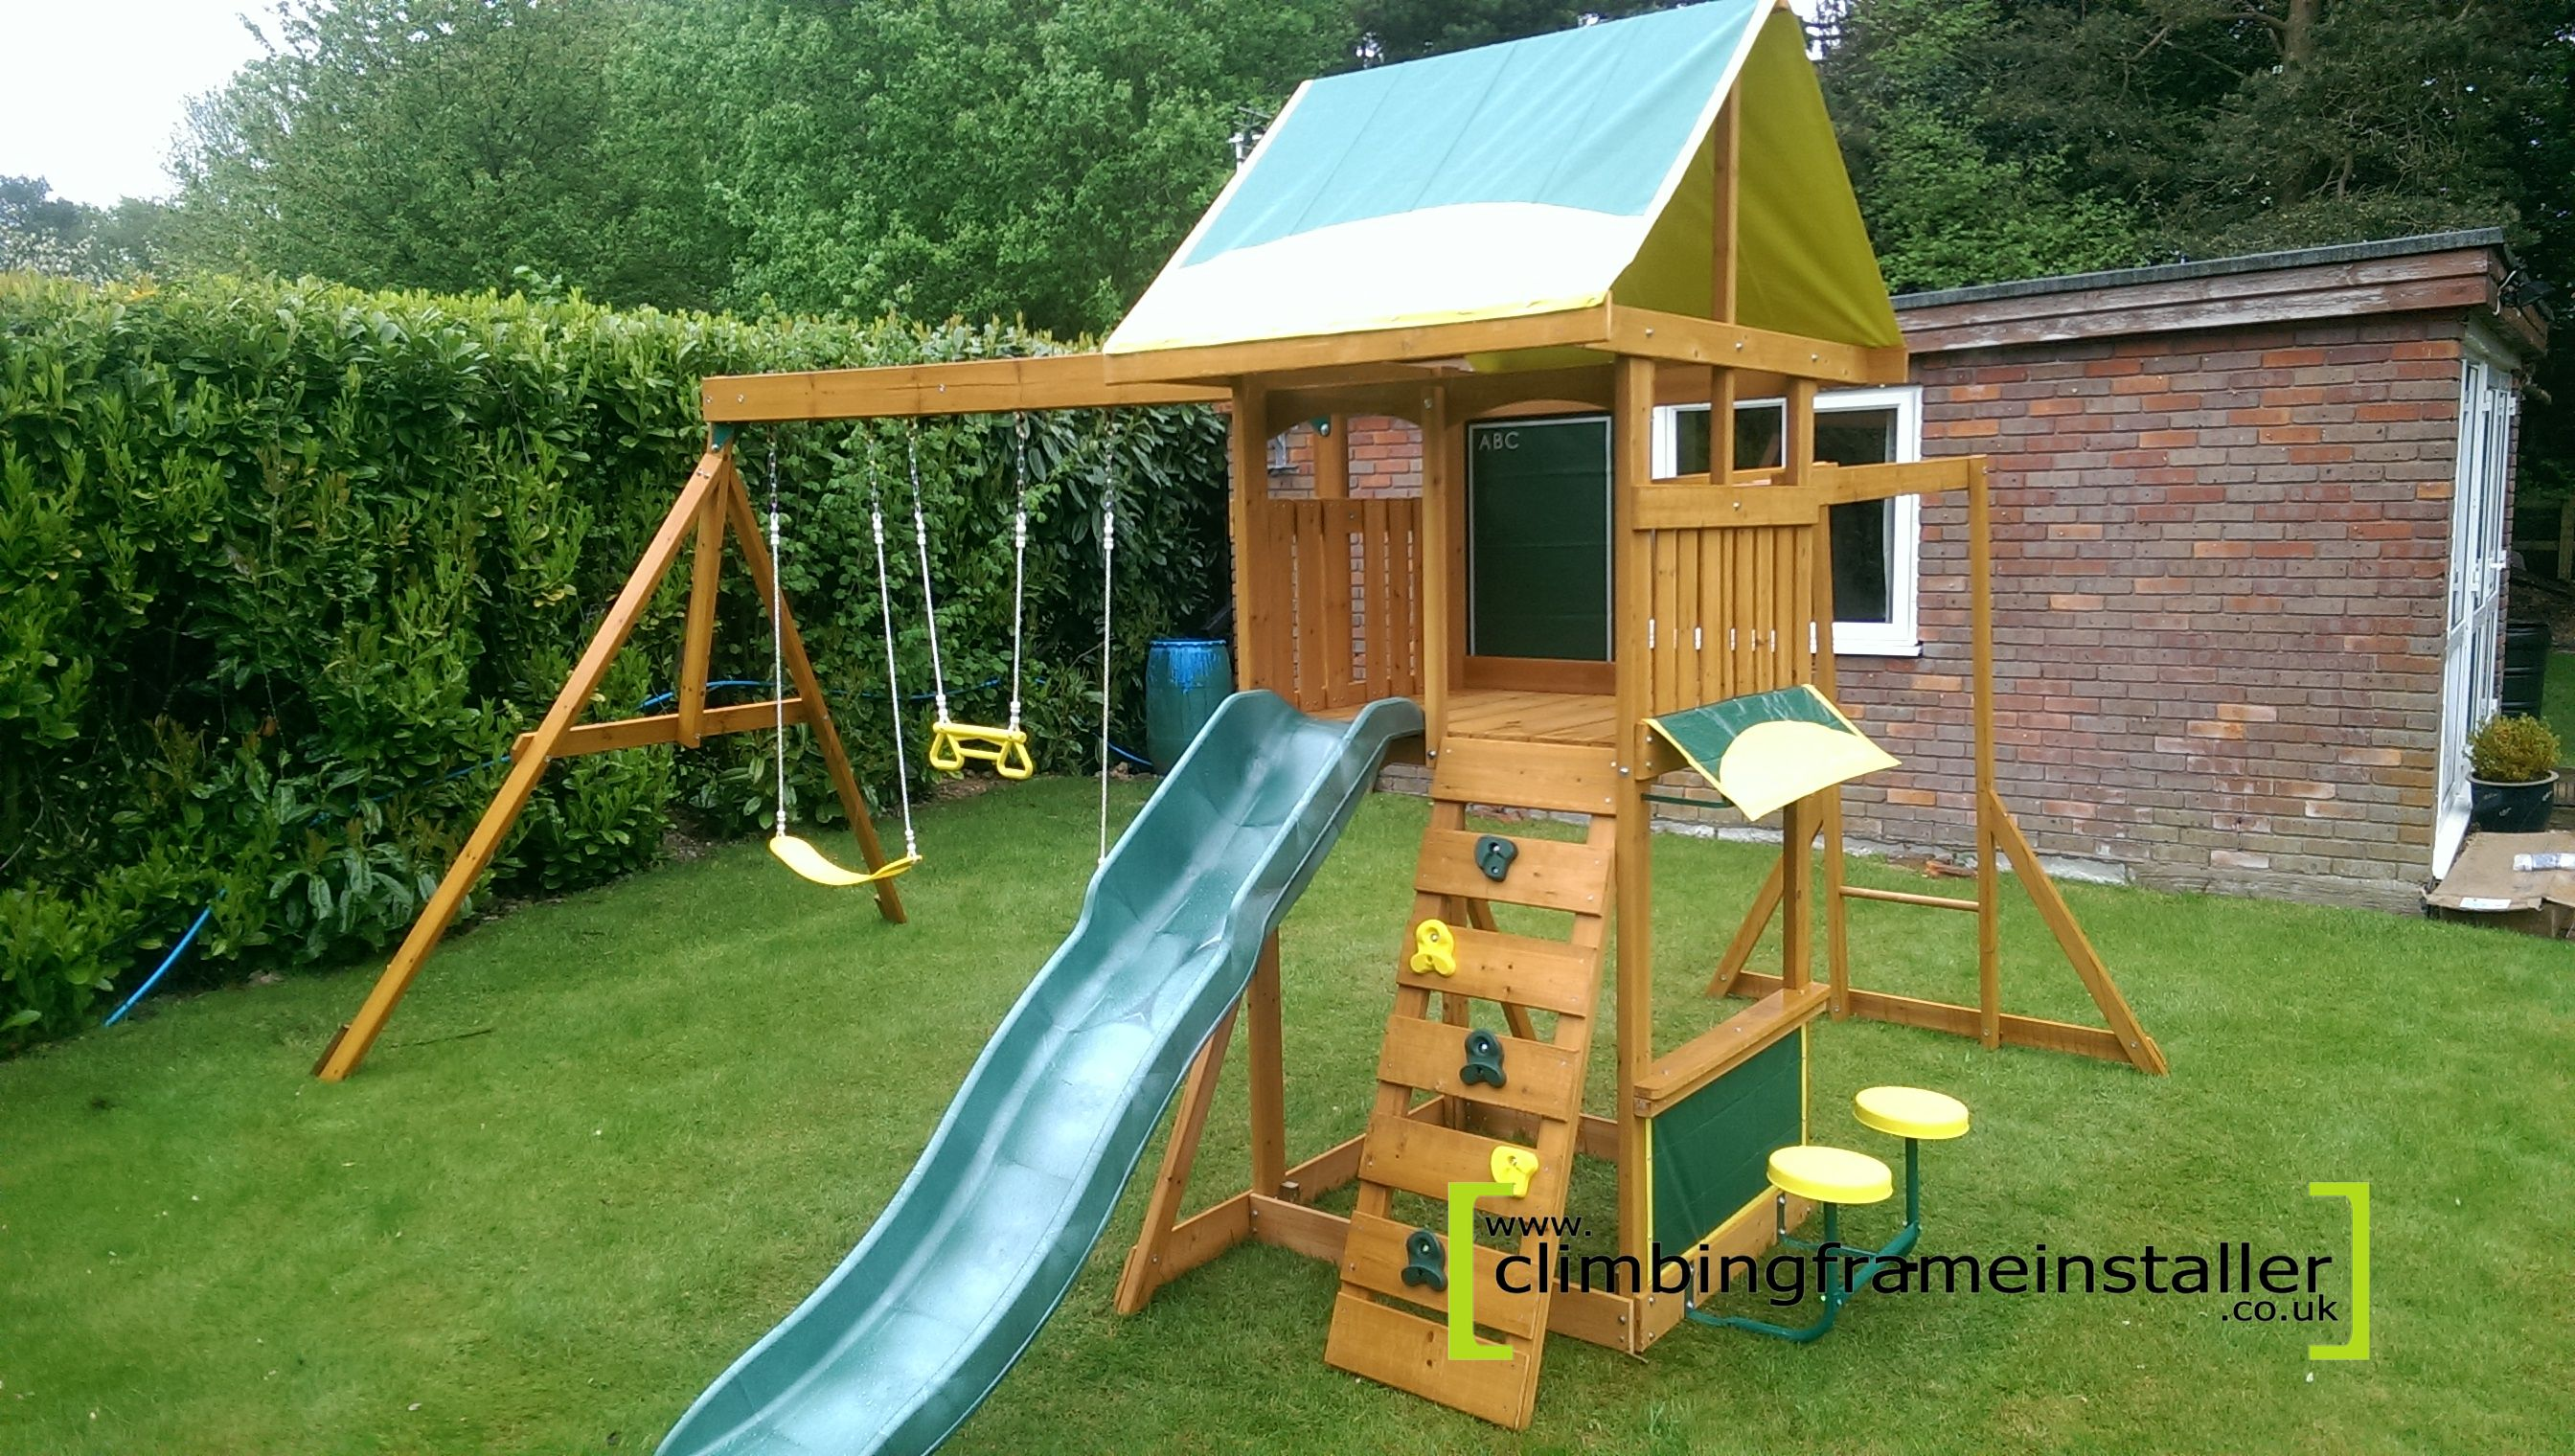 the selwood brightside climbing frame climbing frame installer. Black Bedroom Furniture Sets. Home Design Ideas